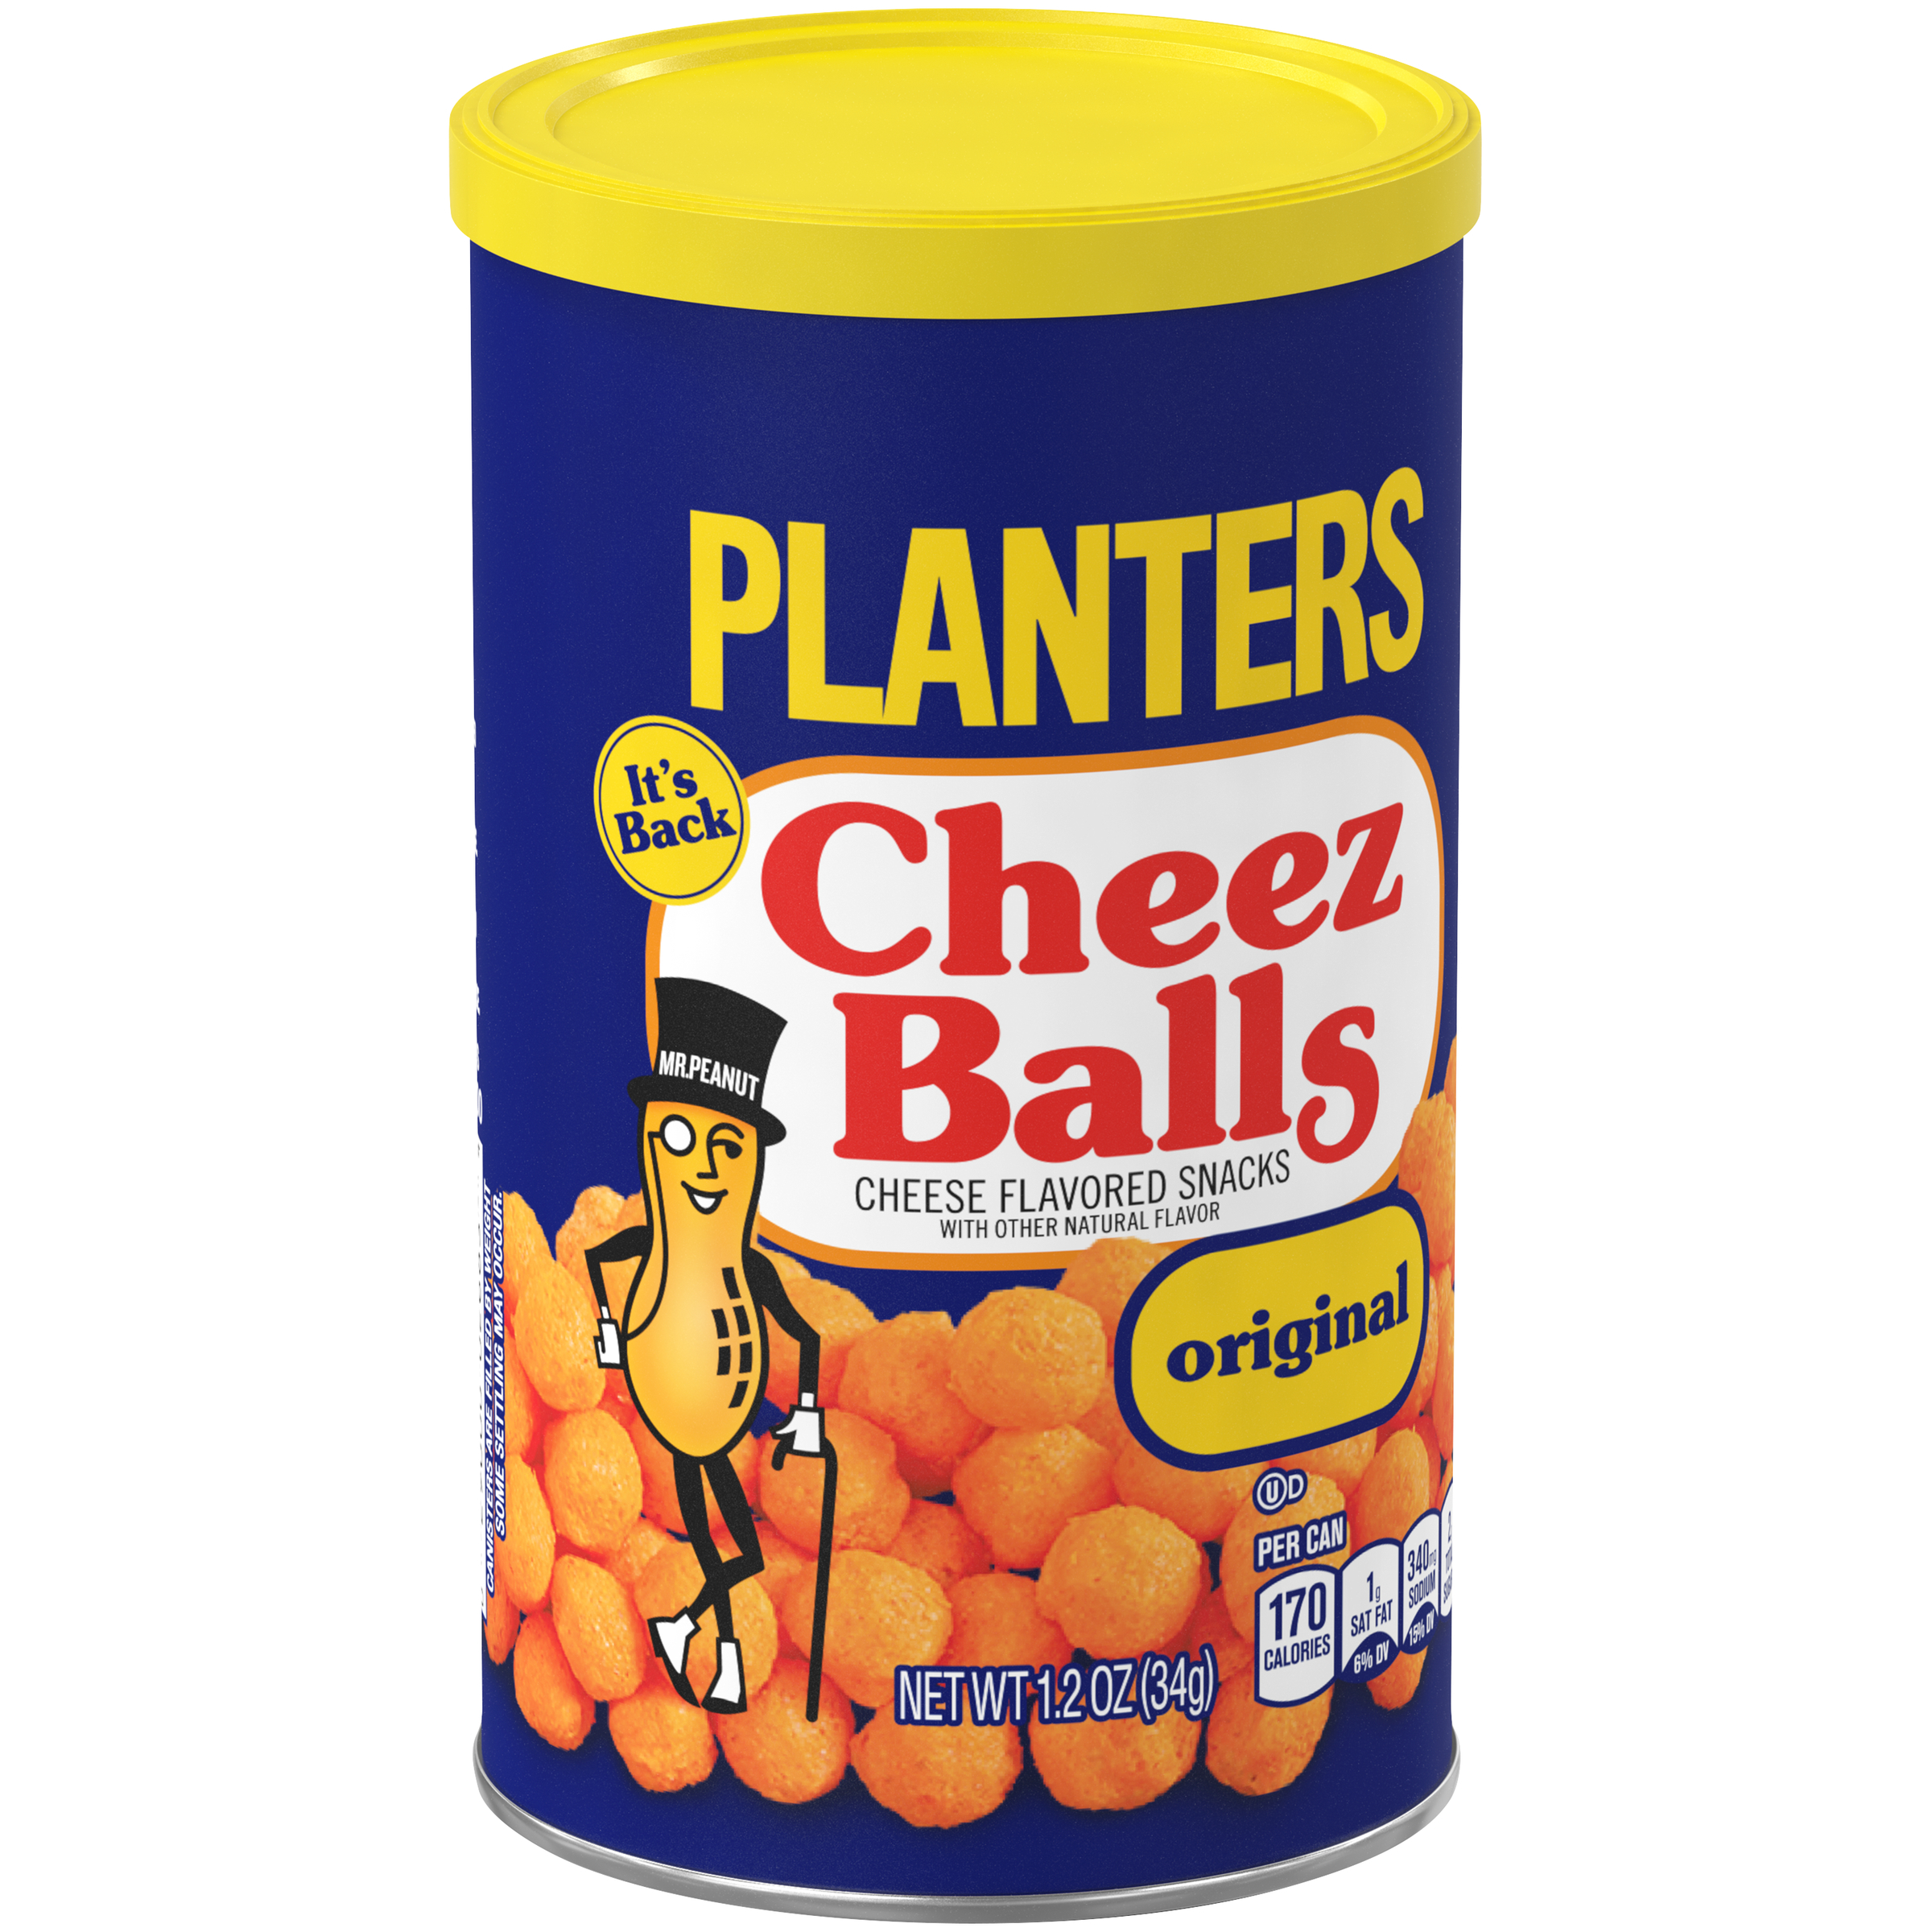 PLANTERS® Cheez Balls 2.75 oz canister (pack of 6)